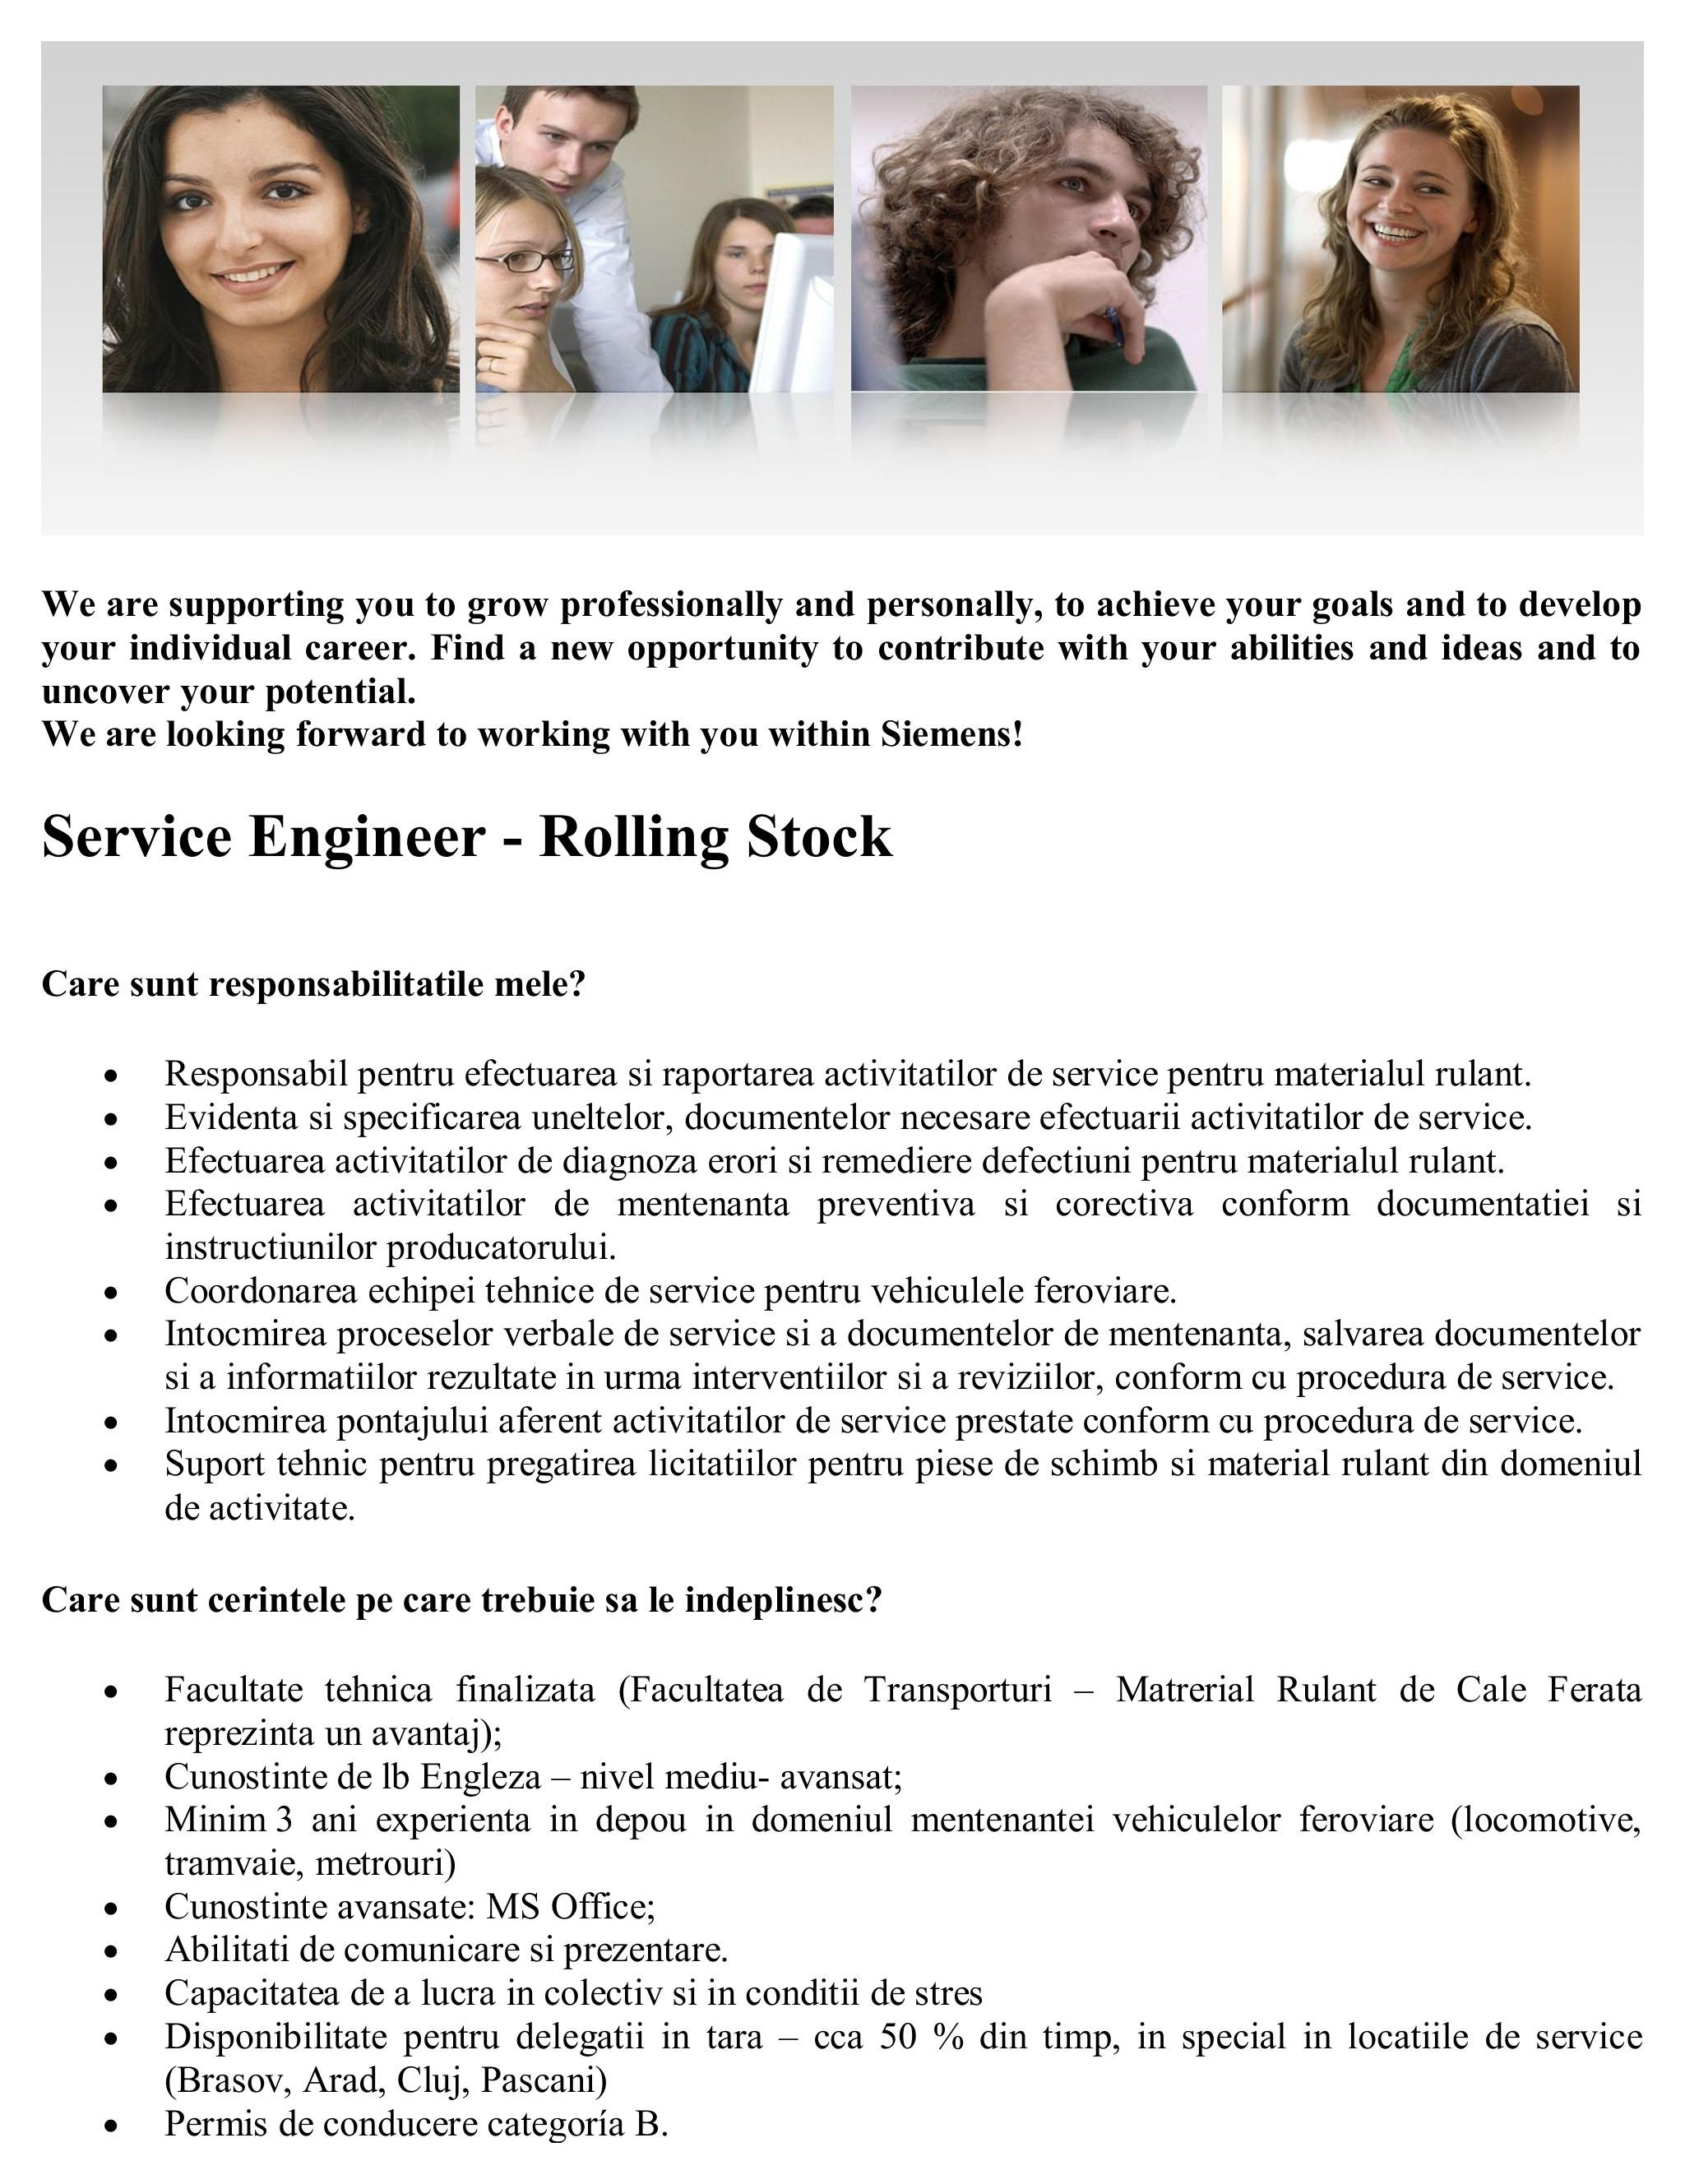 Service Engineer - Rolling